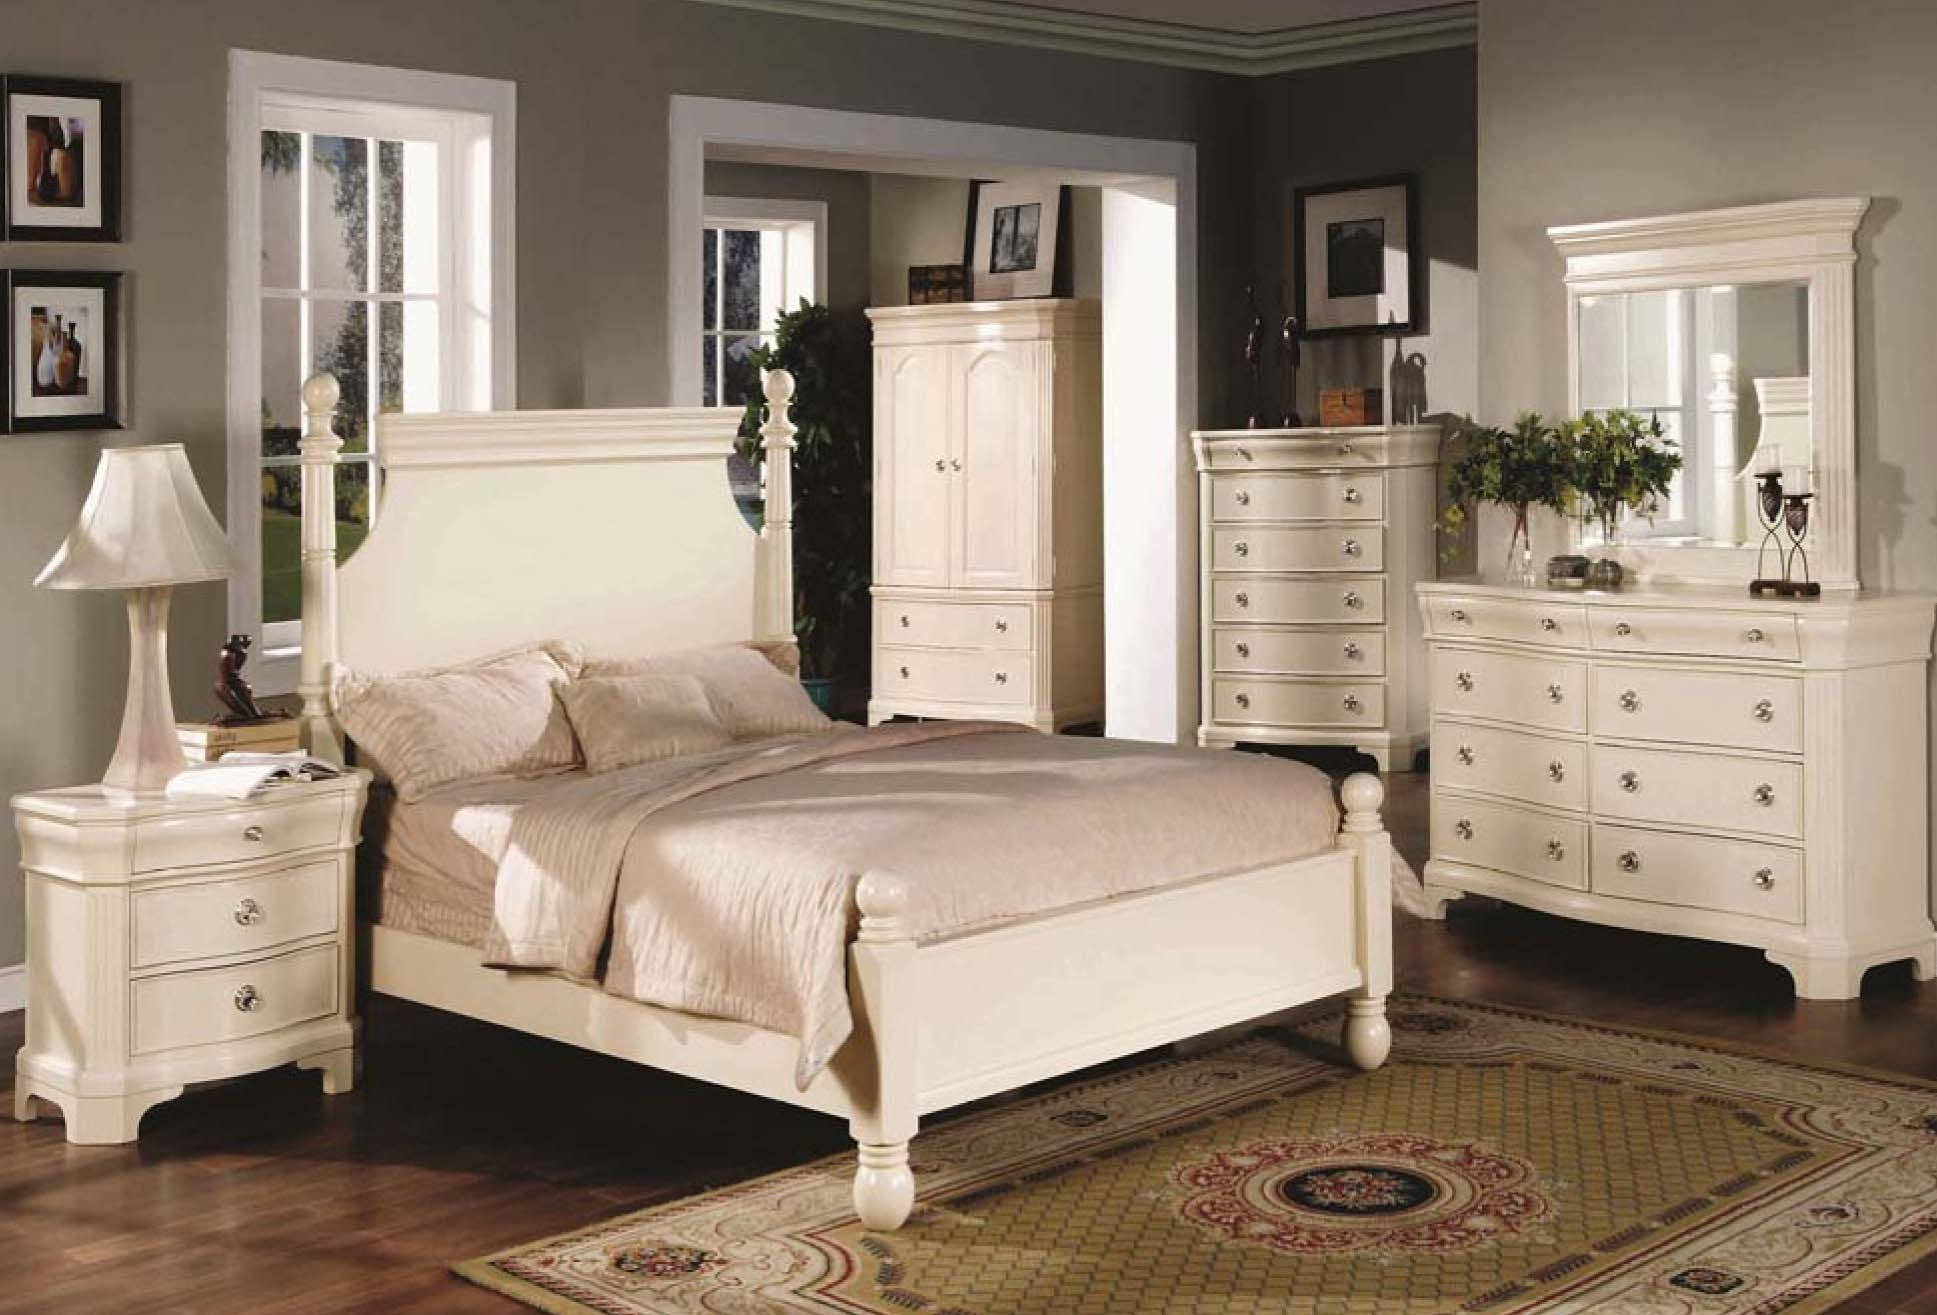 Painting Small Bedrooms Set Remodelling Nice New Antique White Bedroom Furniture 25 About Remodel Home .